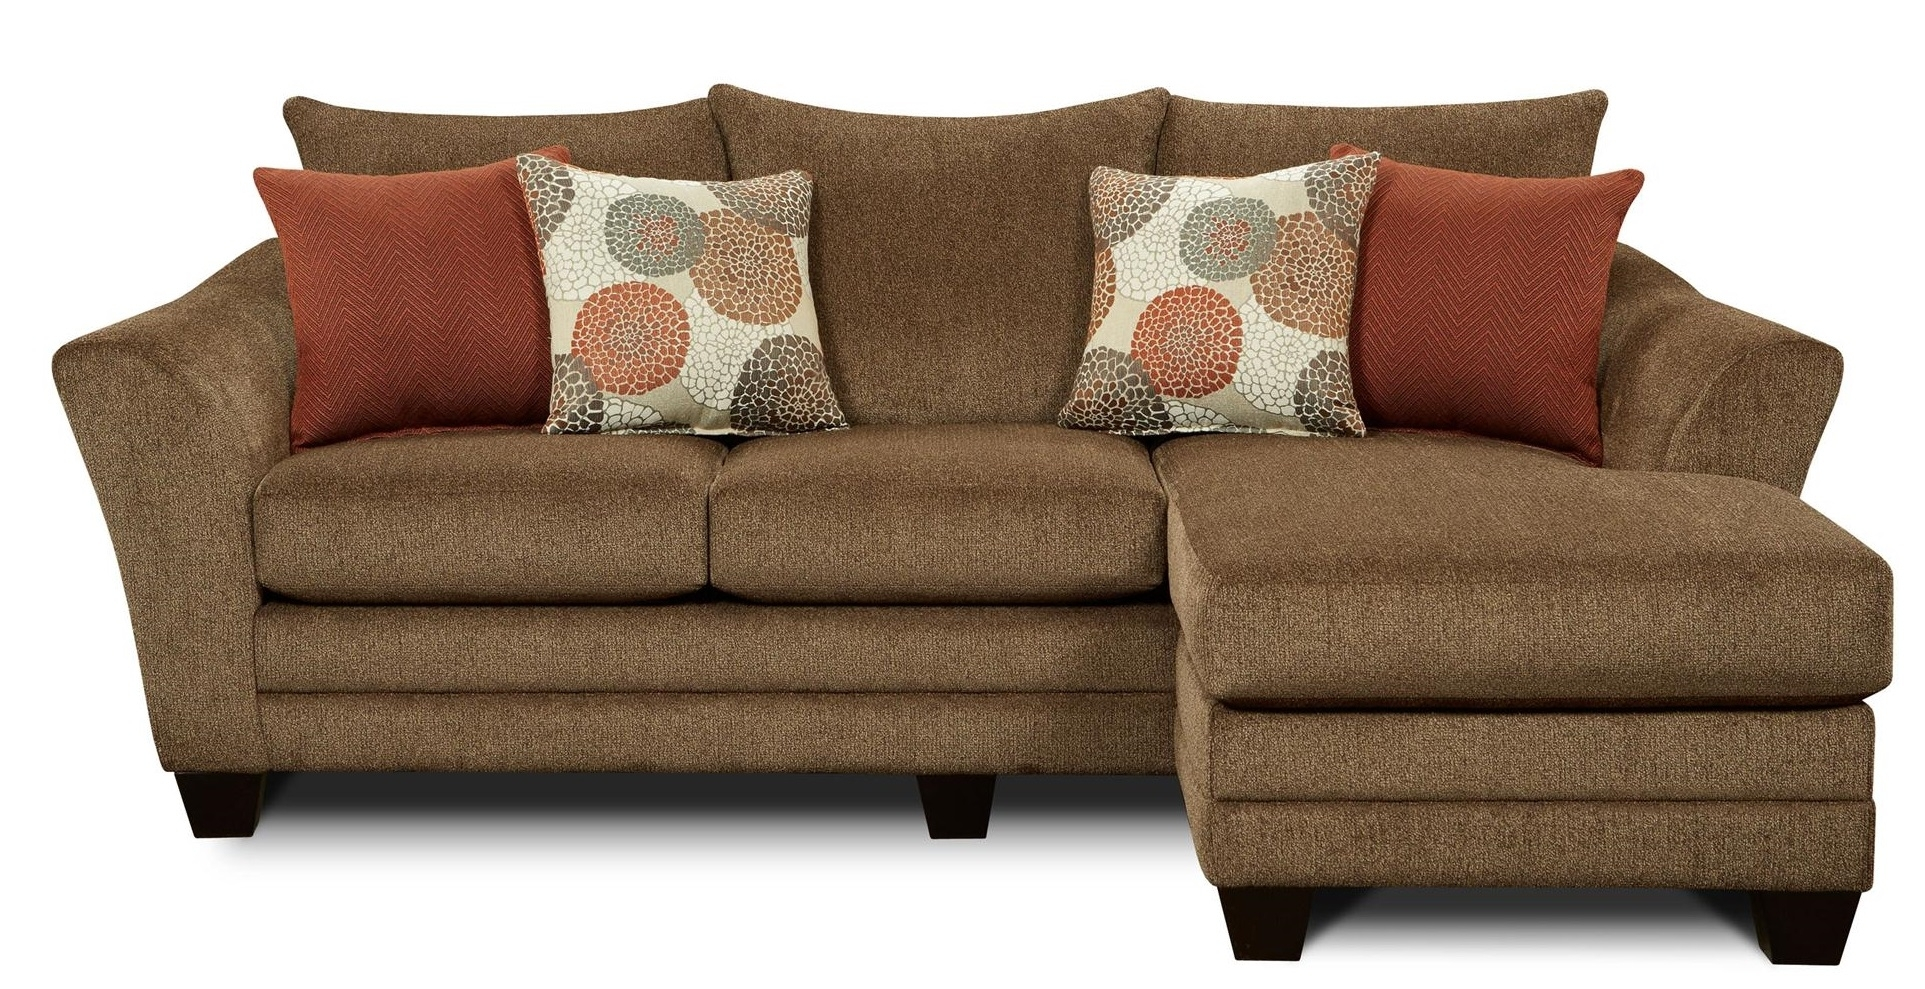 Sofas And Reclining Sofas | Crowley Furniture Stores | Lee's Summit with Kansas City Sectional Sofas (Image 10 of 10)